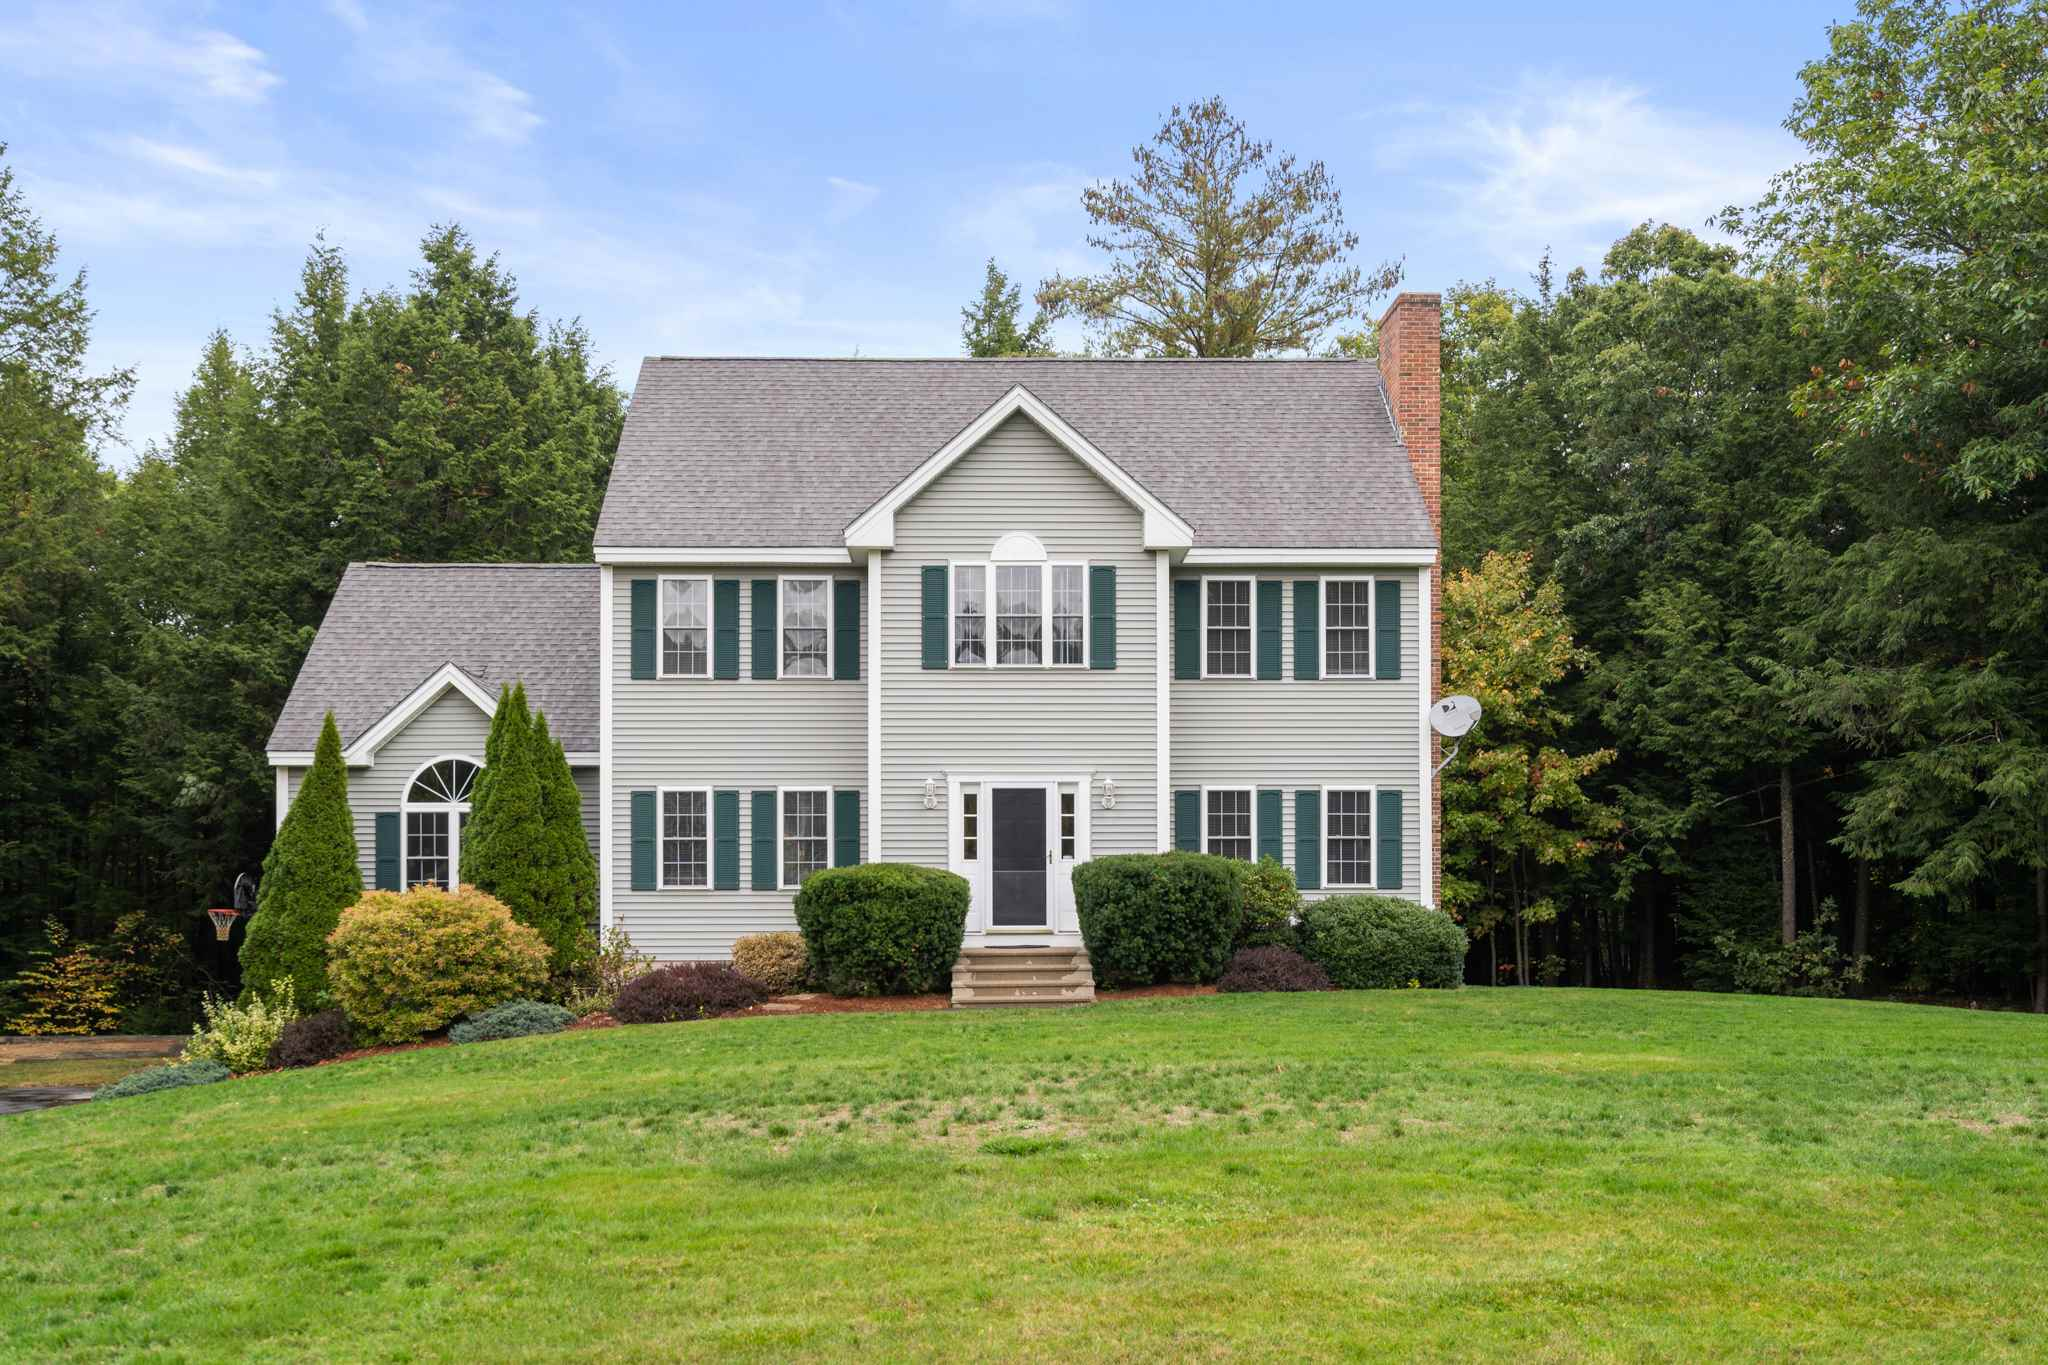 Photo of 42 Fiddlehead Lane Chester NH 03036